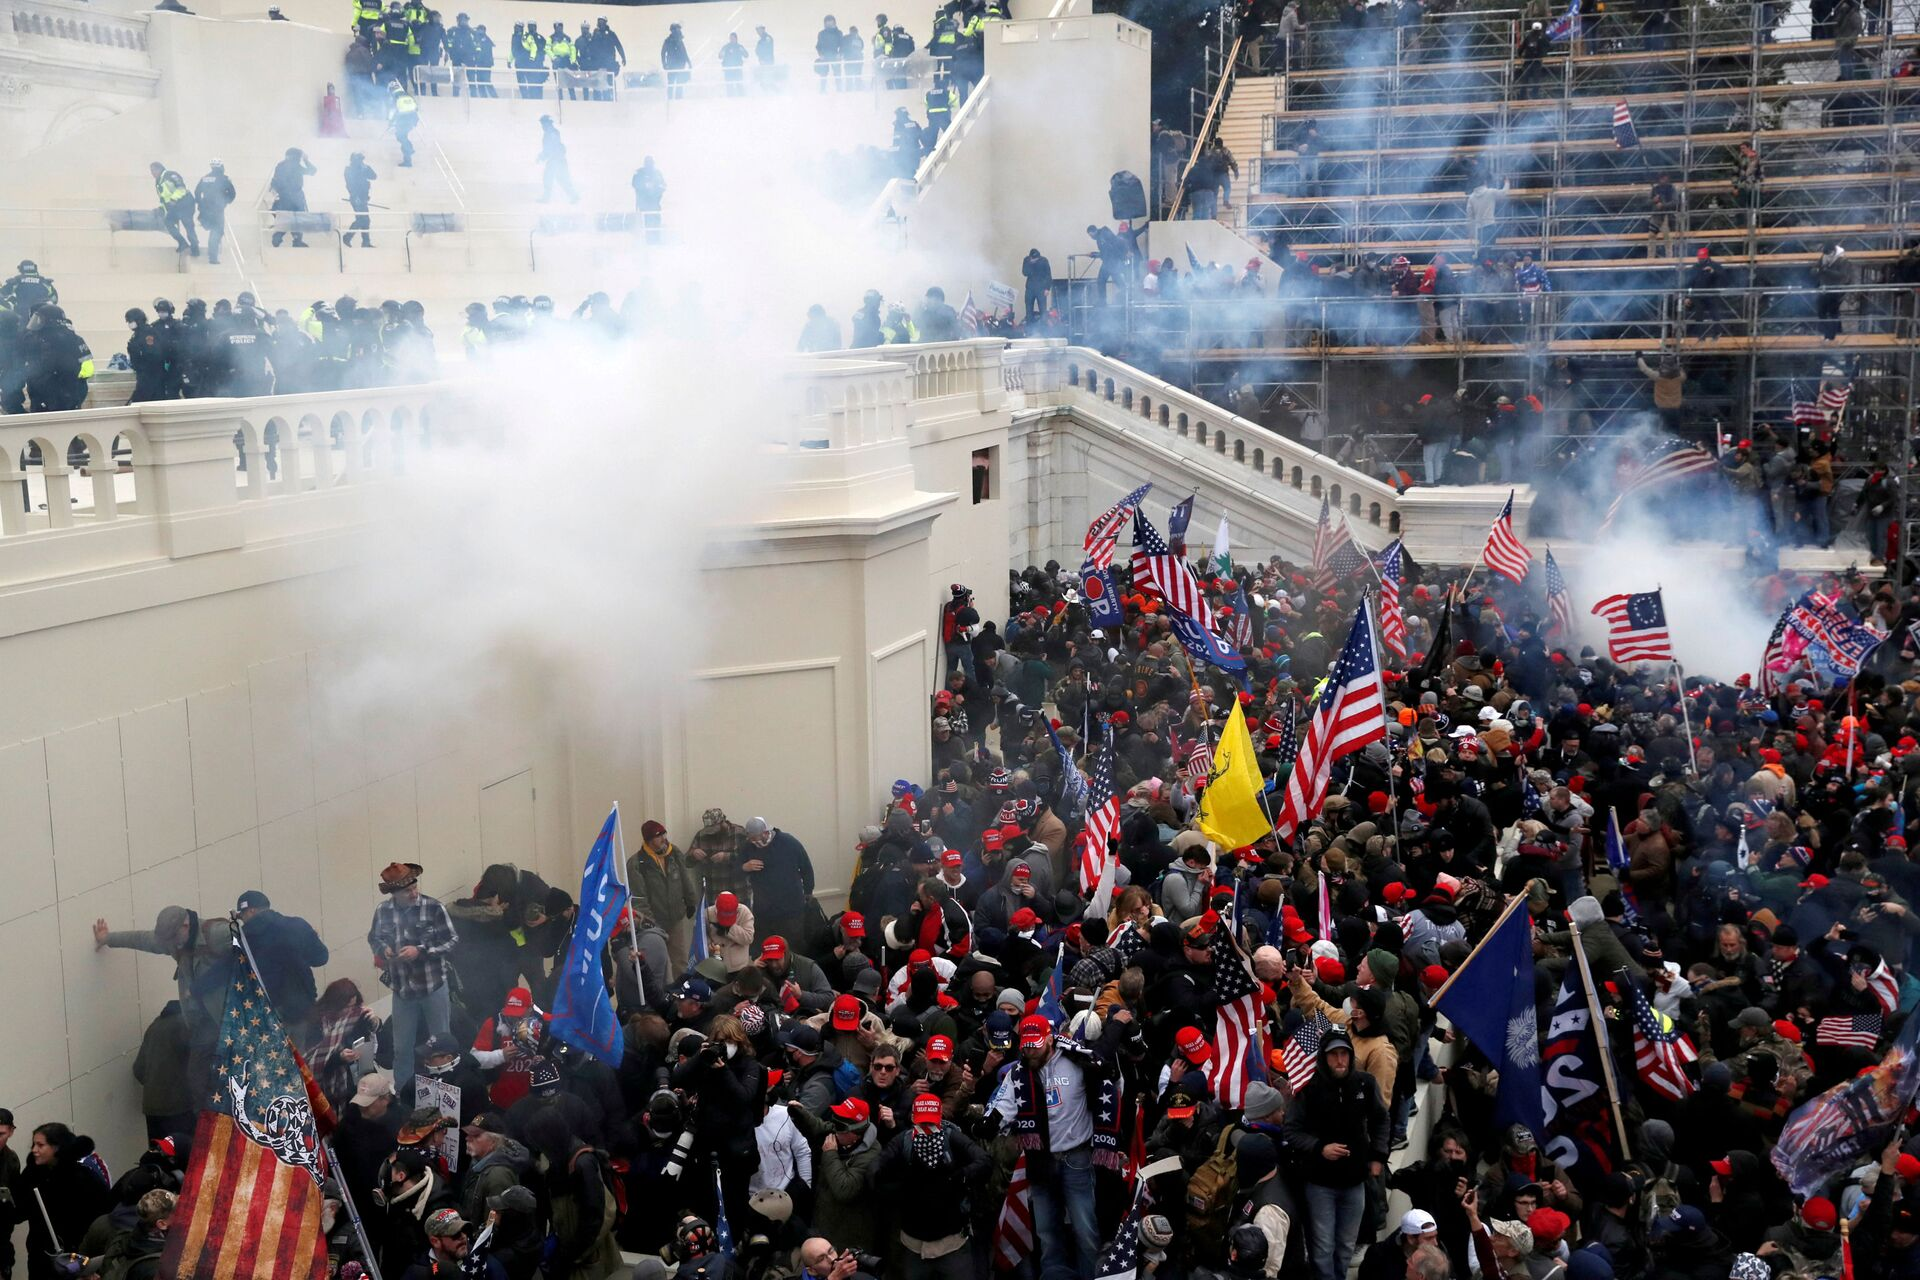 Police release tear gas into a crowd of pro-Trump protesters during clashes at a rally to contest the certification of the 2020 U.S. presidential election results by the U.S. Congress, at the U.S. Capitol Building in Washington, U.S, January 6, 2021. - Sputnik International, 1920, 14.09.2021